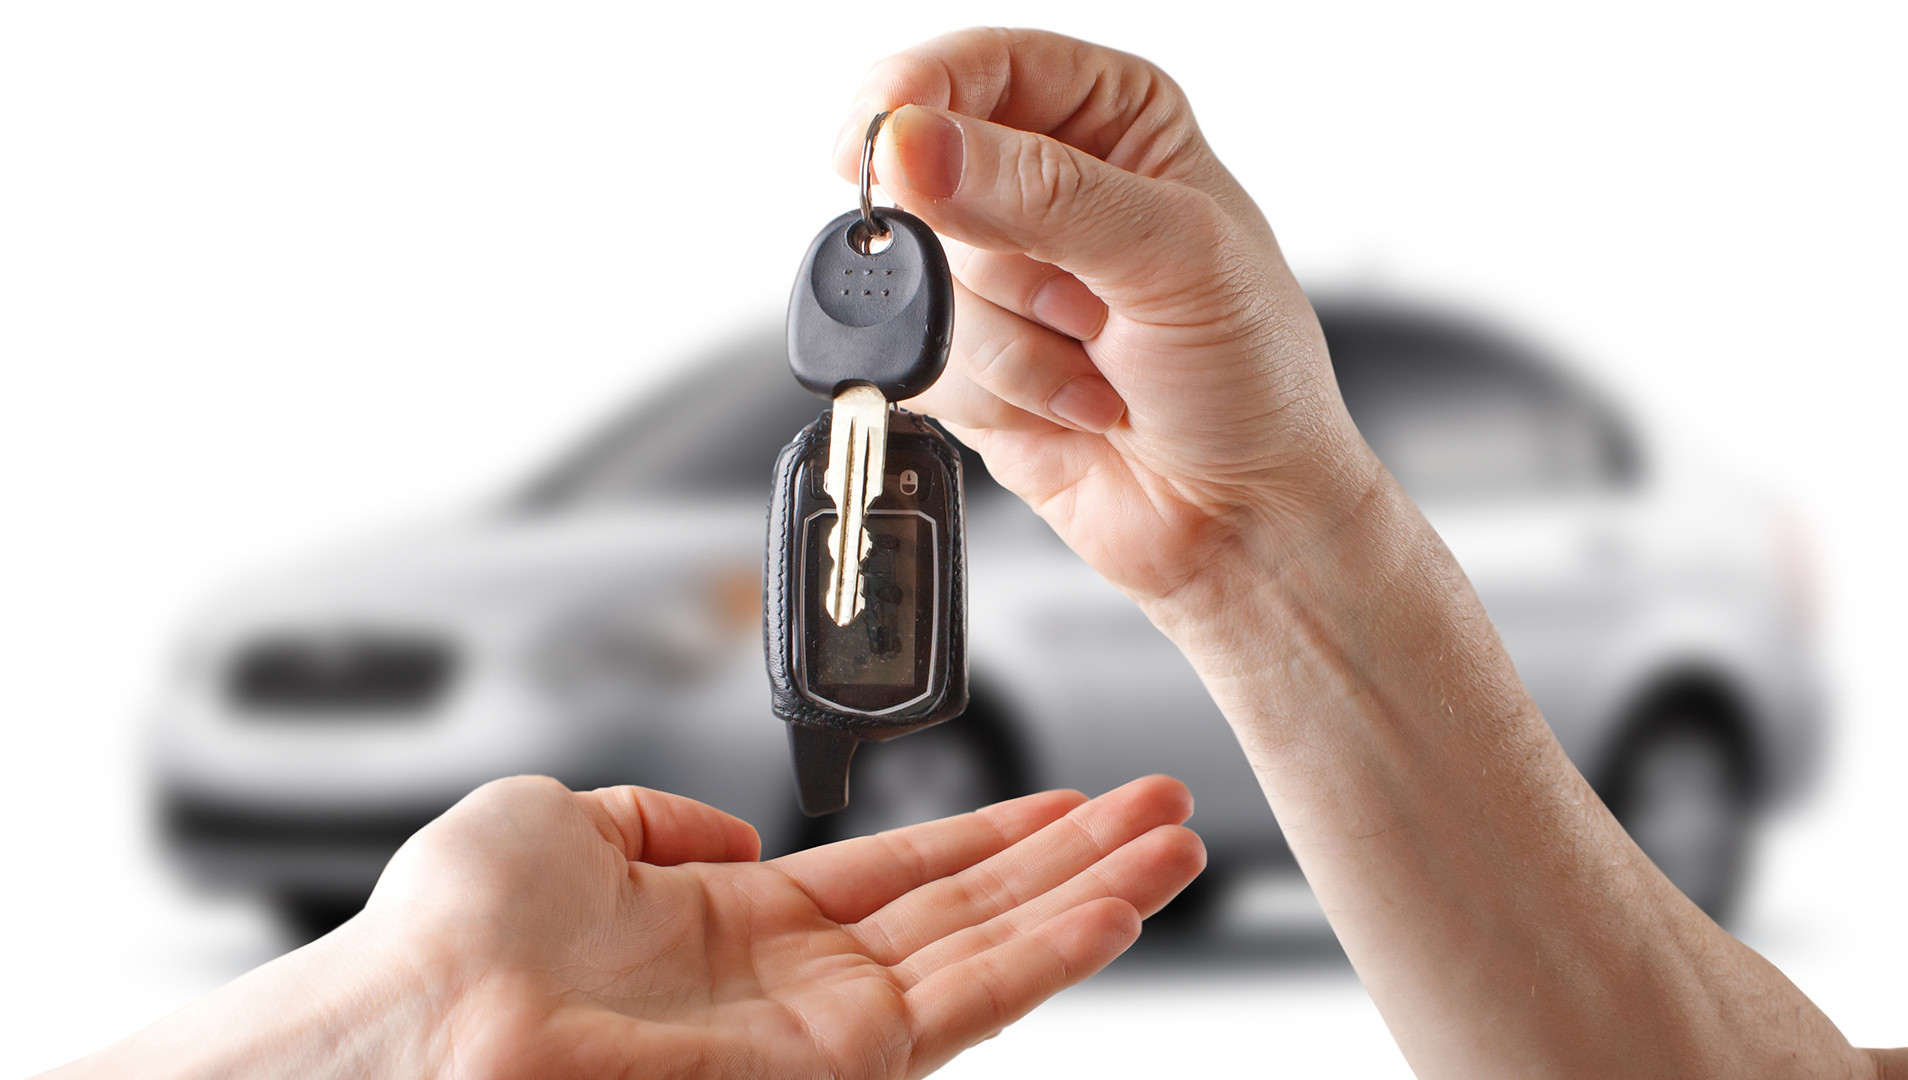 Legal advisory – Contribute to Change Used vehicle owners